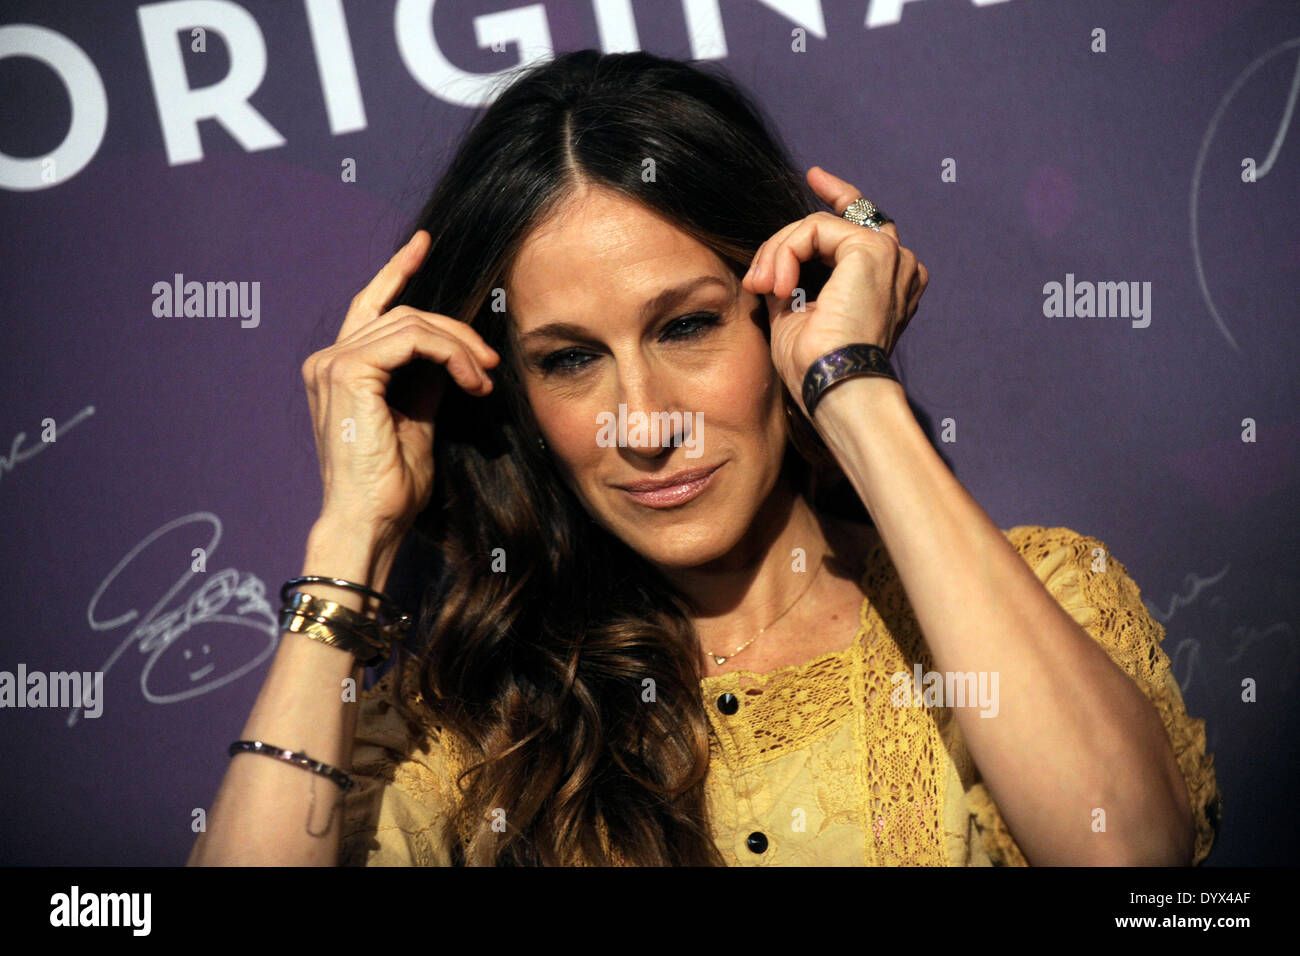 New York, NY, USA. 25th Apr, 2014. Sarah Jessica Parker attends Variety's Power of Women: New York lunch at Cipriani 42nd Street on April 25, 2014 in New York City Credit:  dpa picture alliance/Alamy Live News - Stock Image